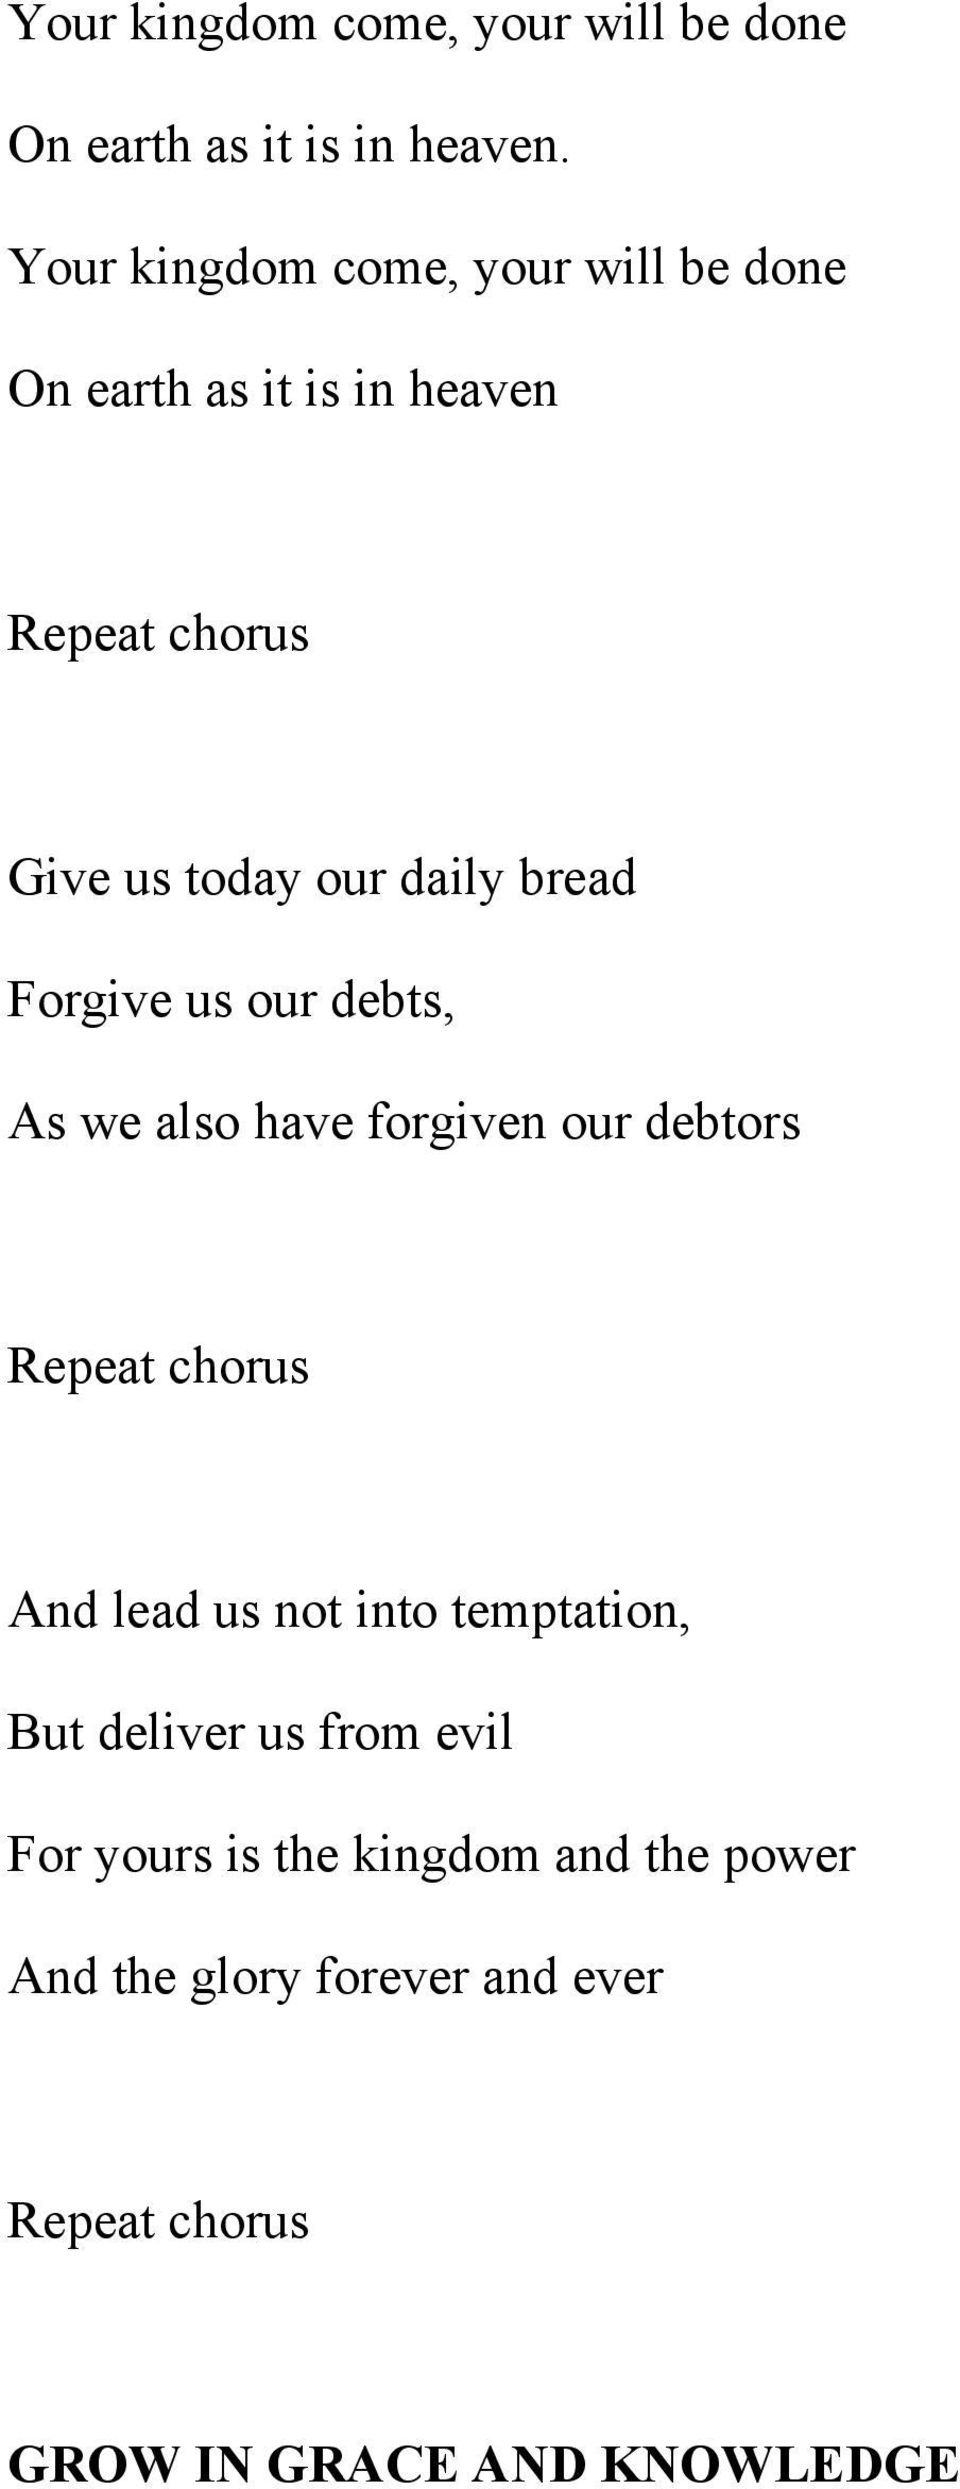 bread Forgive us our debts, As we also have forgiven our debtors Repeat chorus And lead us not into